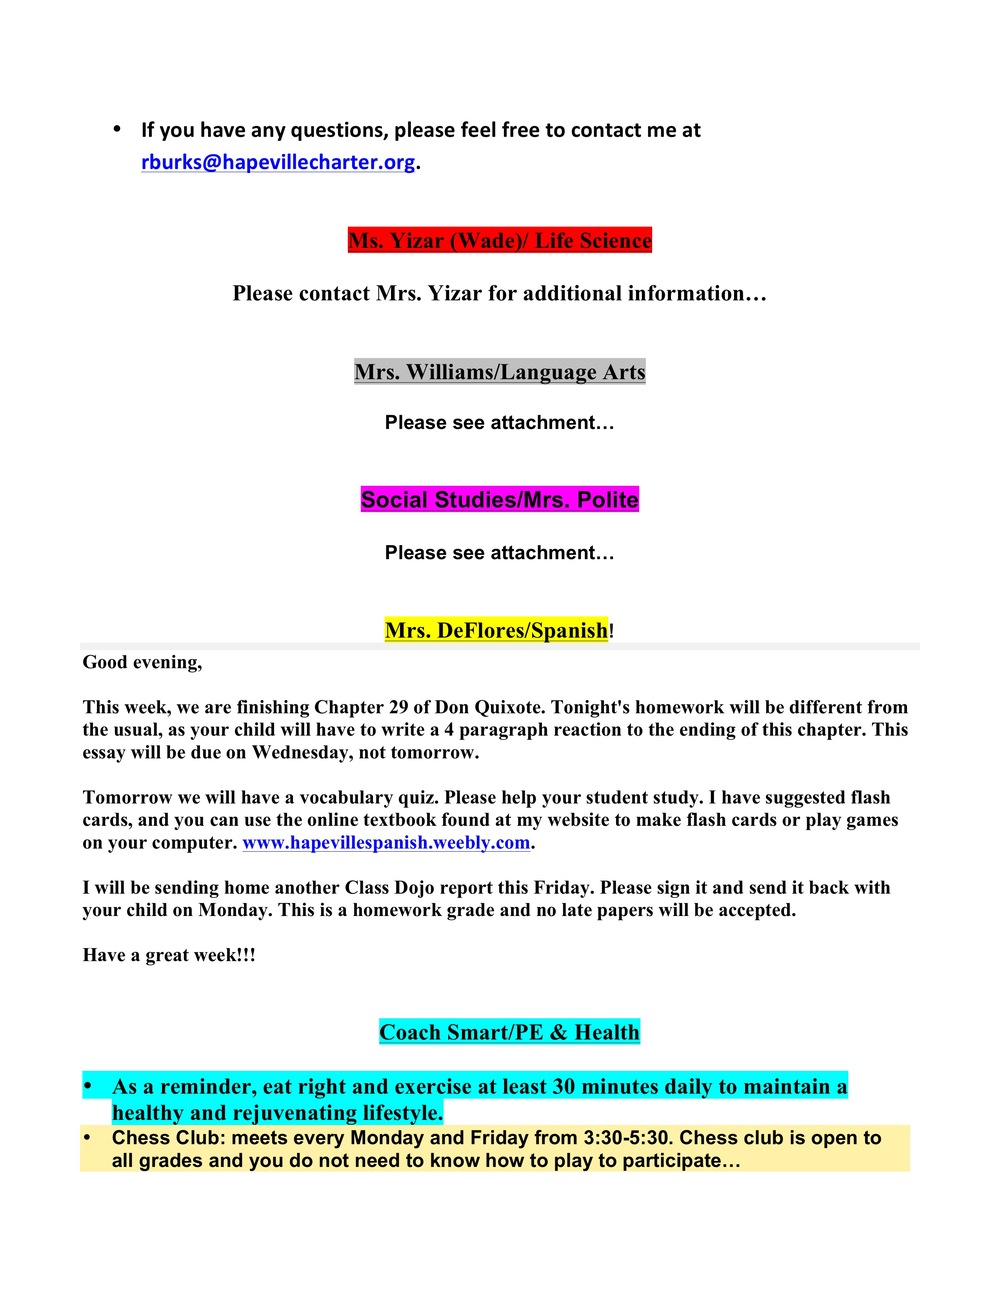 Newsletter Image7th grade February 2 2015 4.jpeg